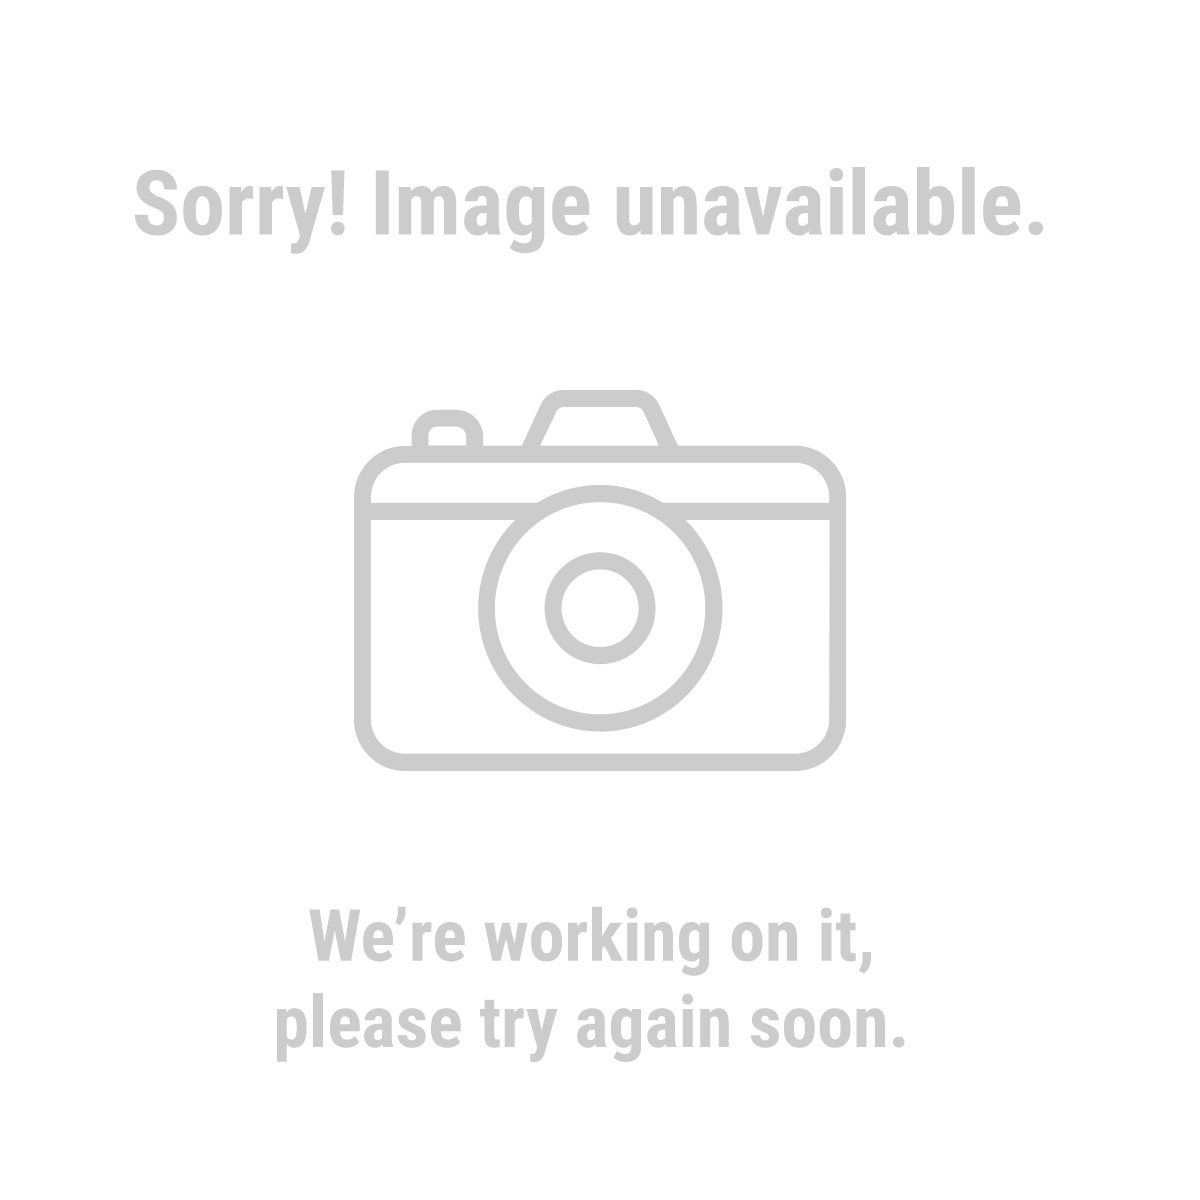 Pittsburgh 96075 6 Piece Precision Electrical Screwdriver Set